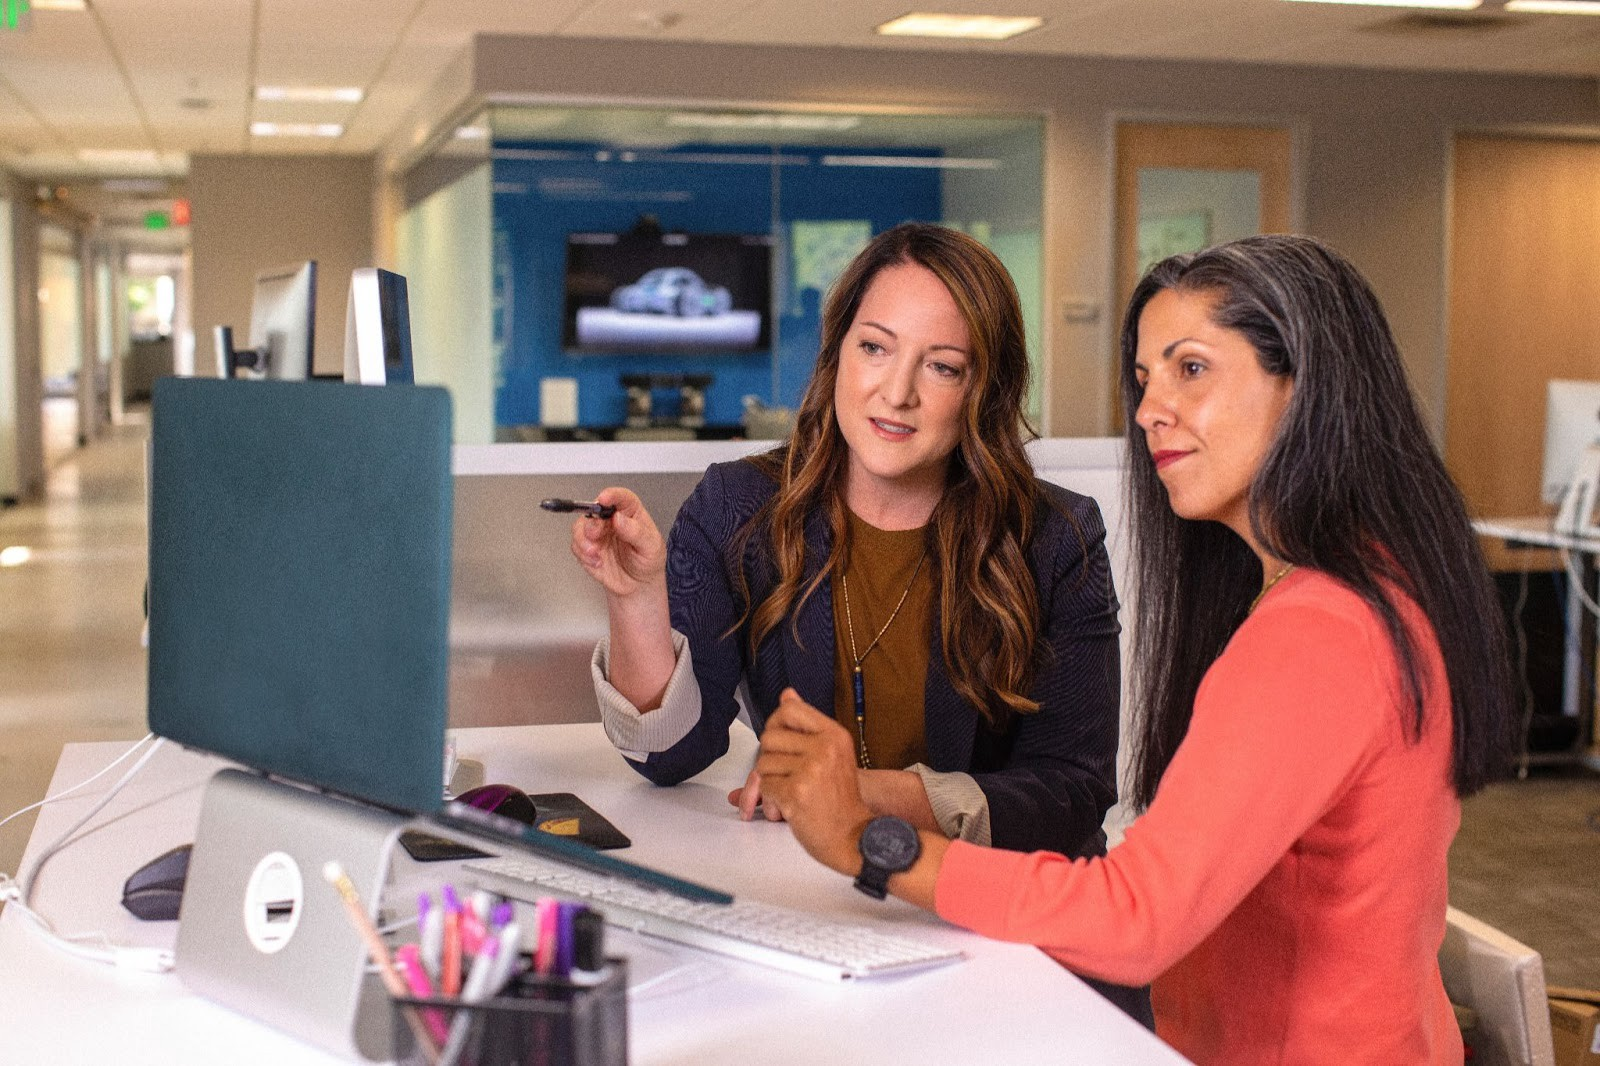 Two women discussing work in front of a computer